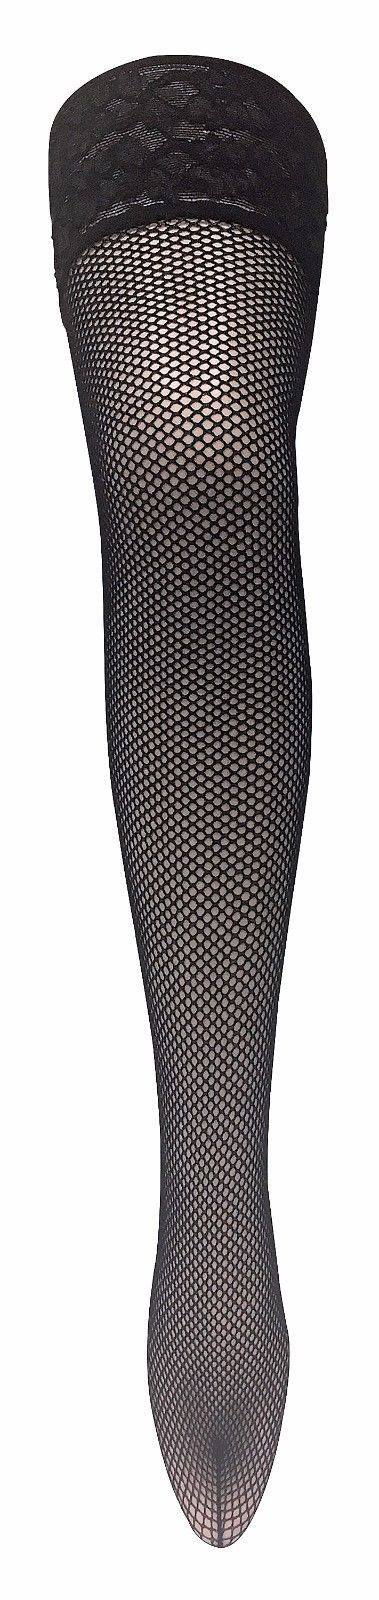 Ladies Black Floral Deep Lace Top Thigh High Lingerie Fishnet Hold Ups Stockings